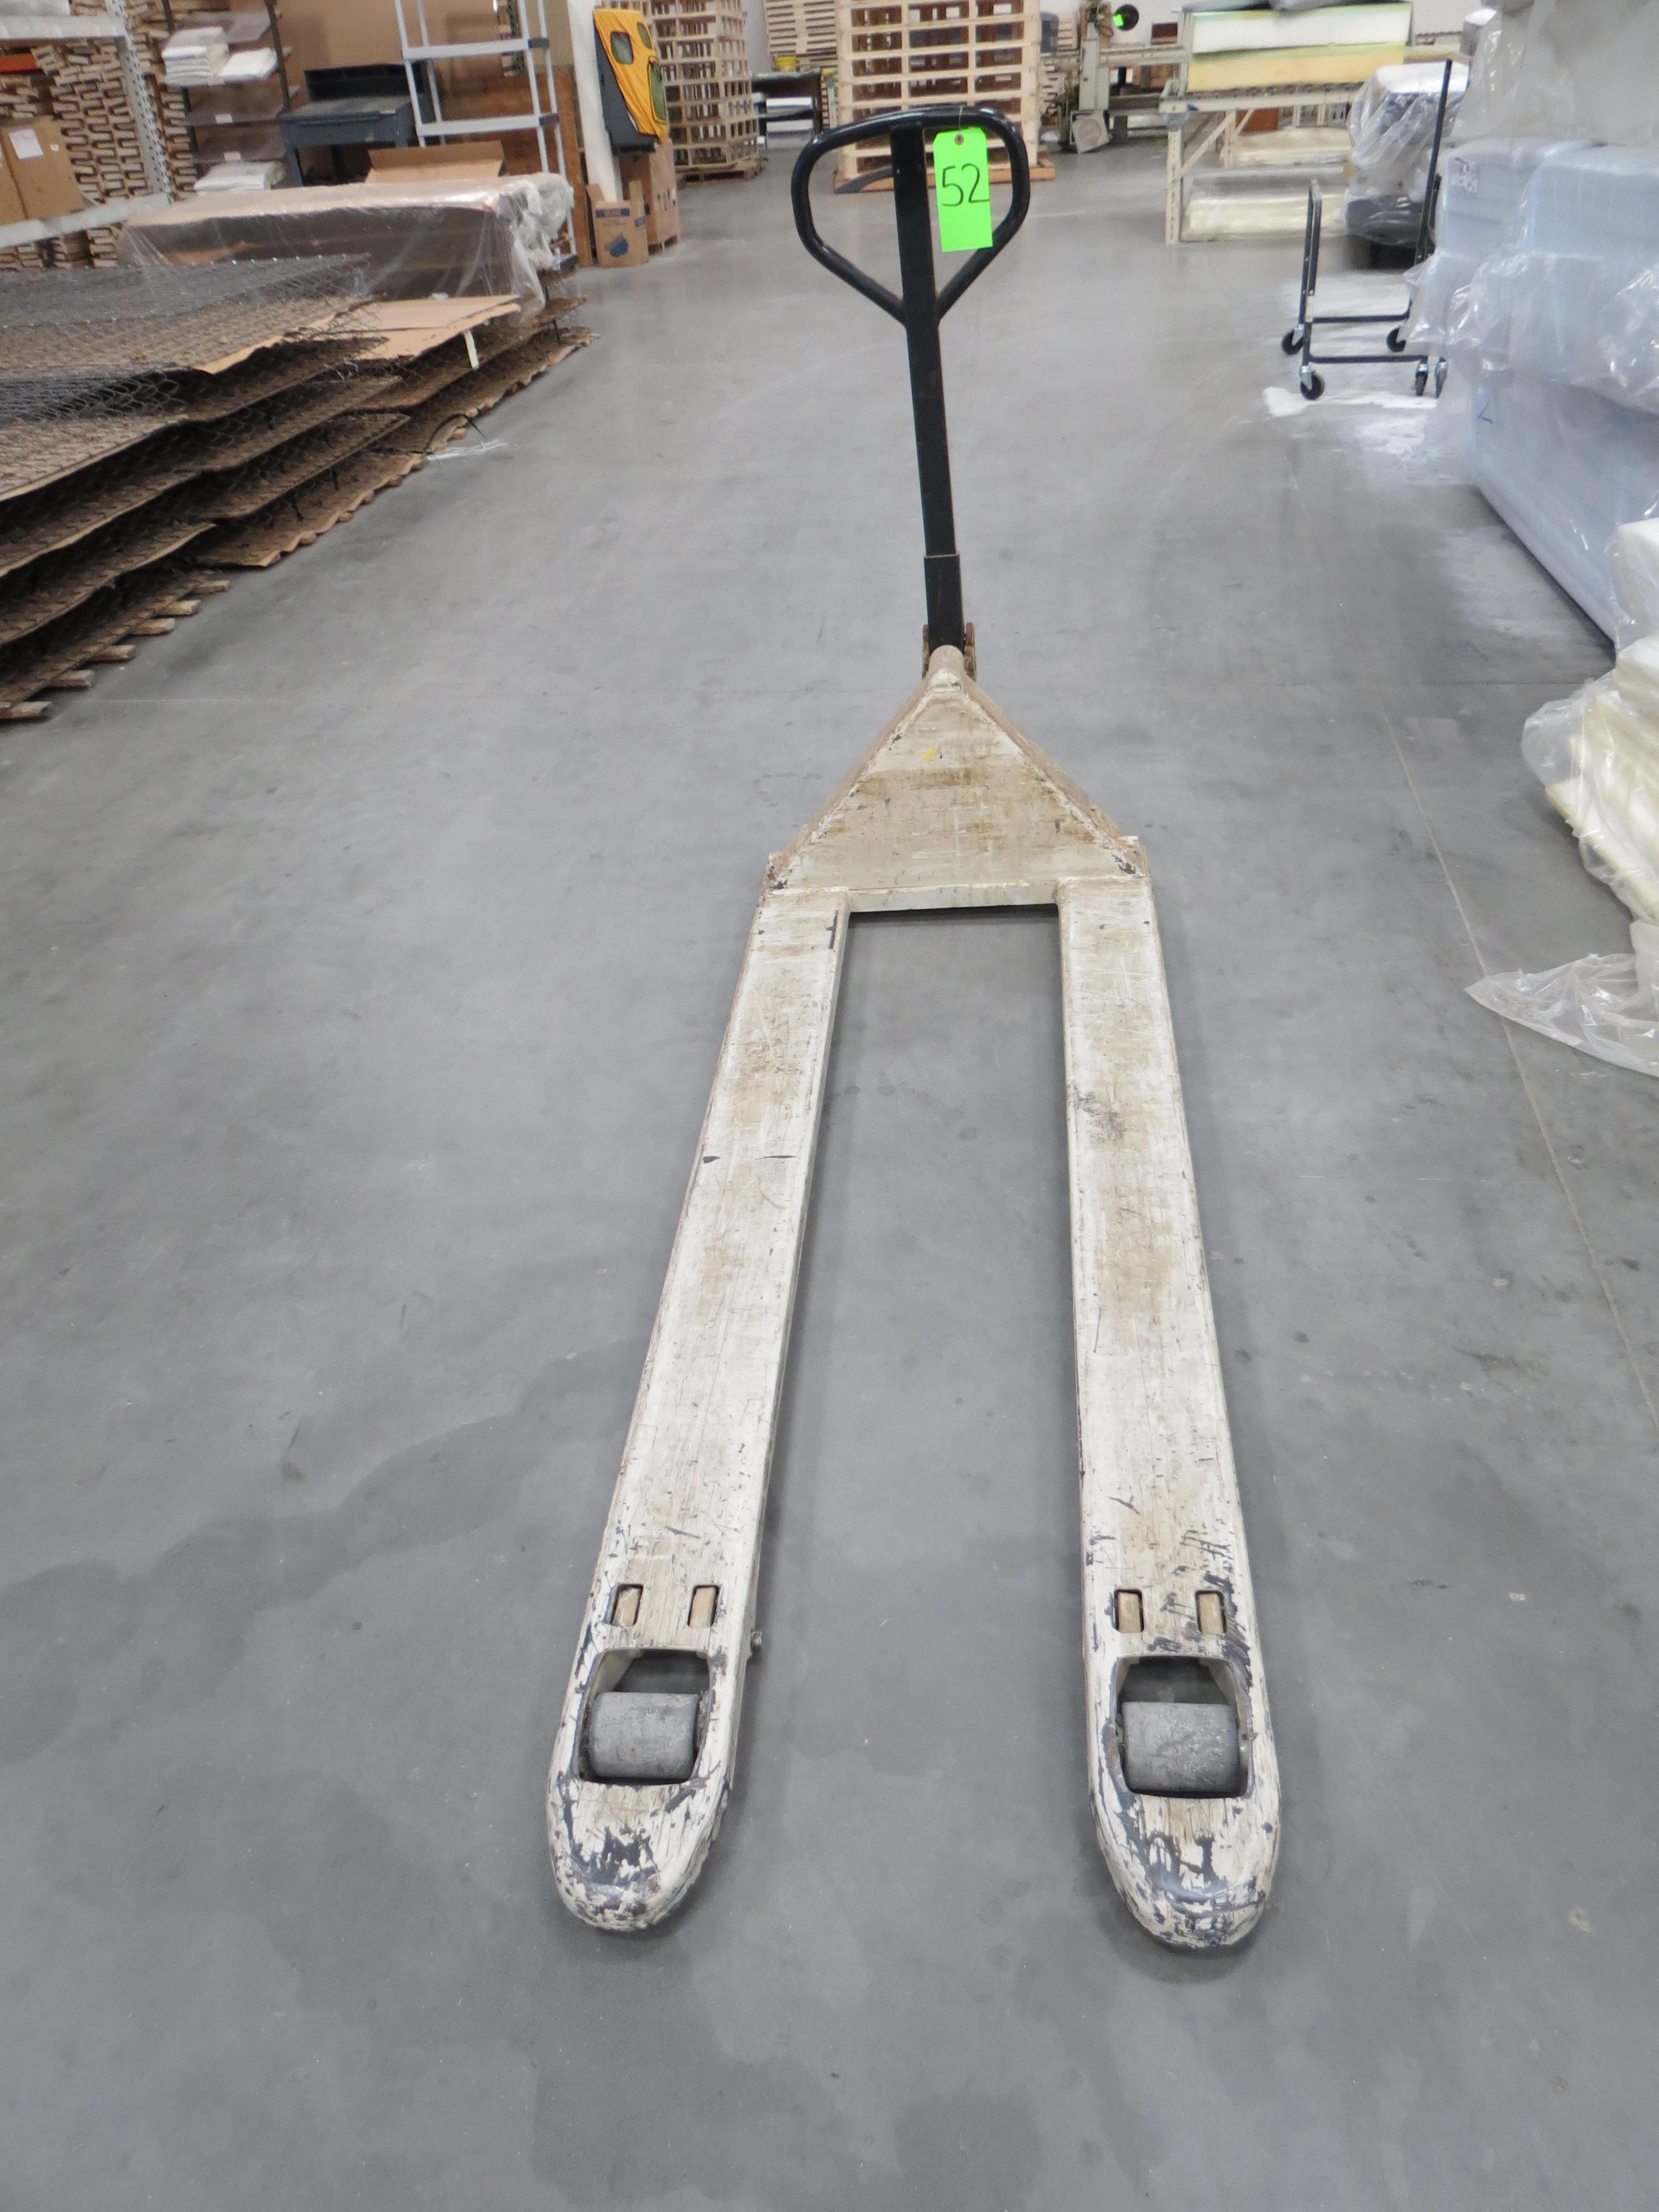 Crown Pallet Jack Approx. 5K Capacity with 6' Forks